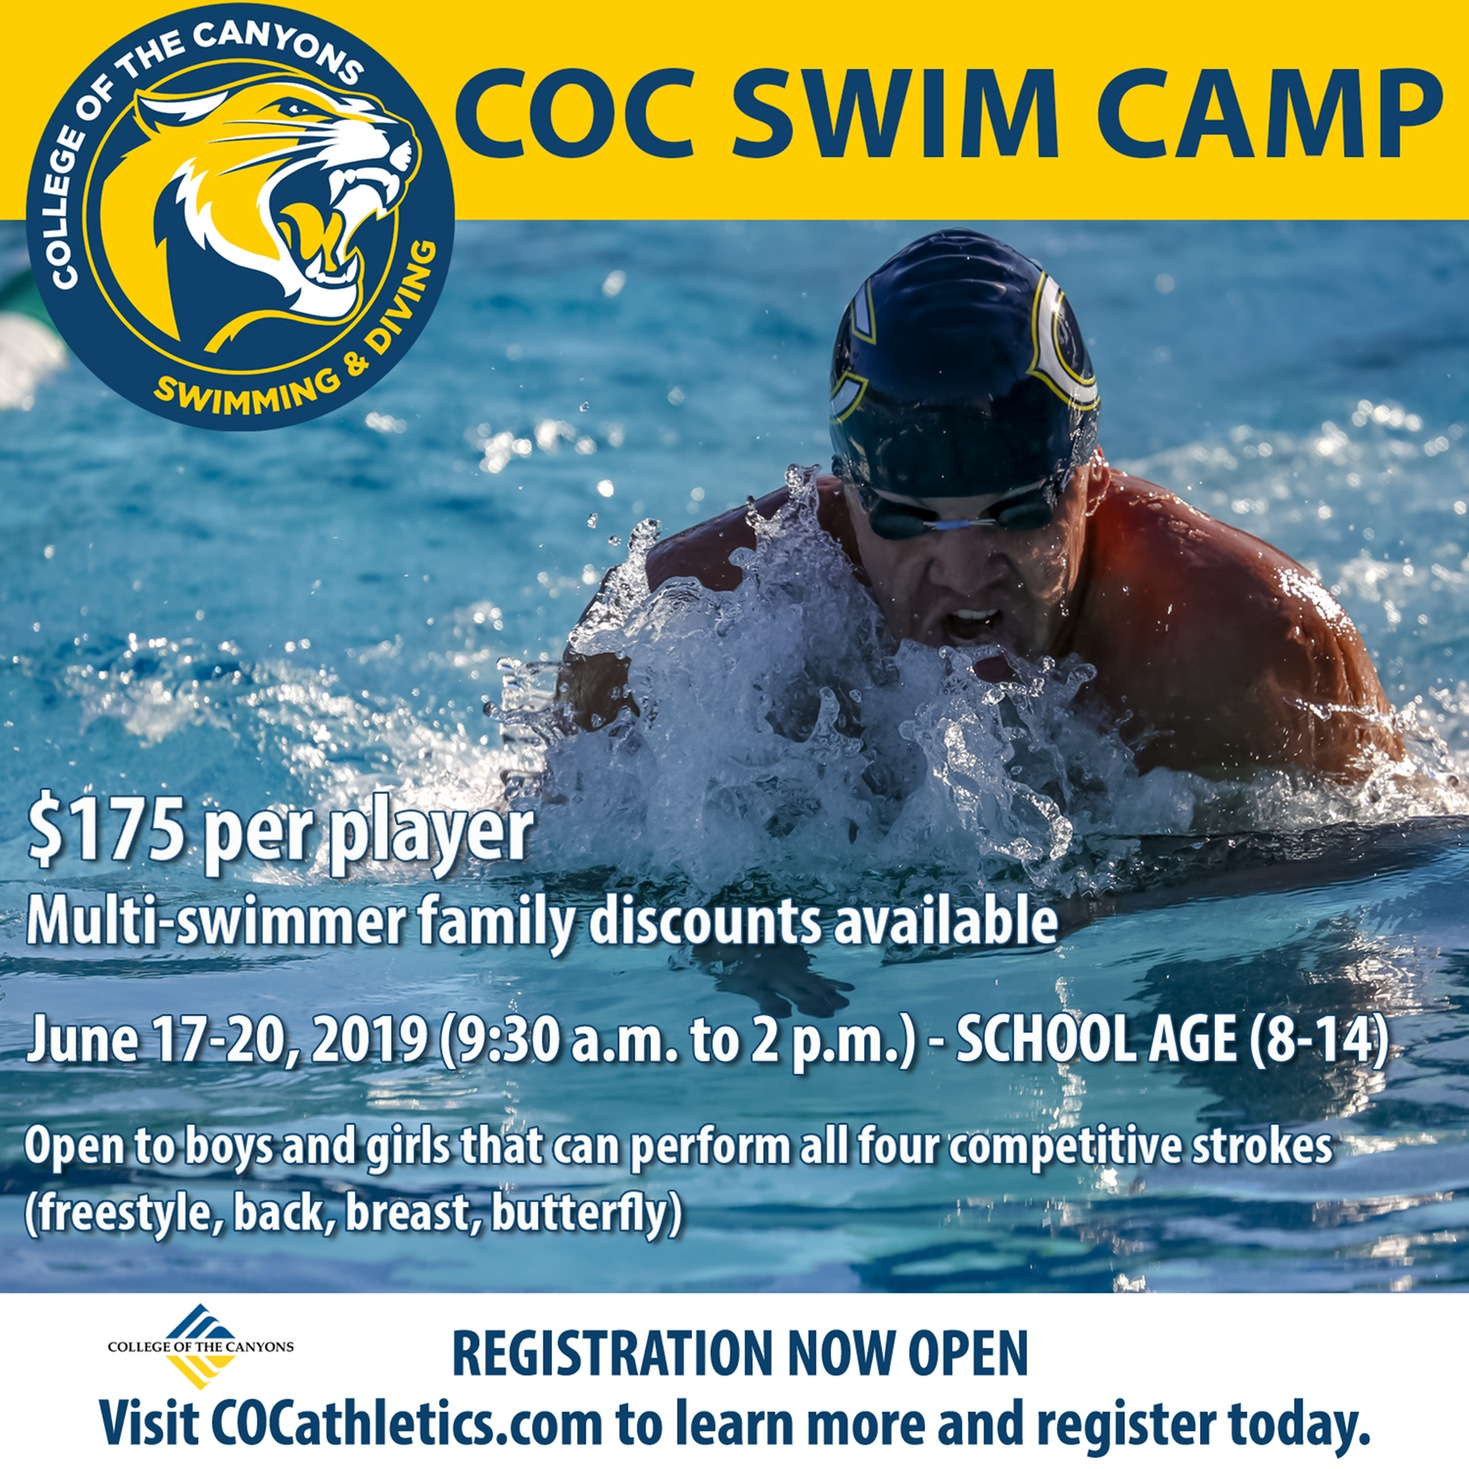 COC swim camp one session info graphic.